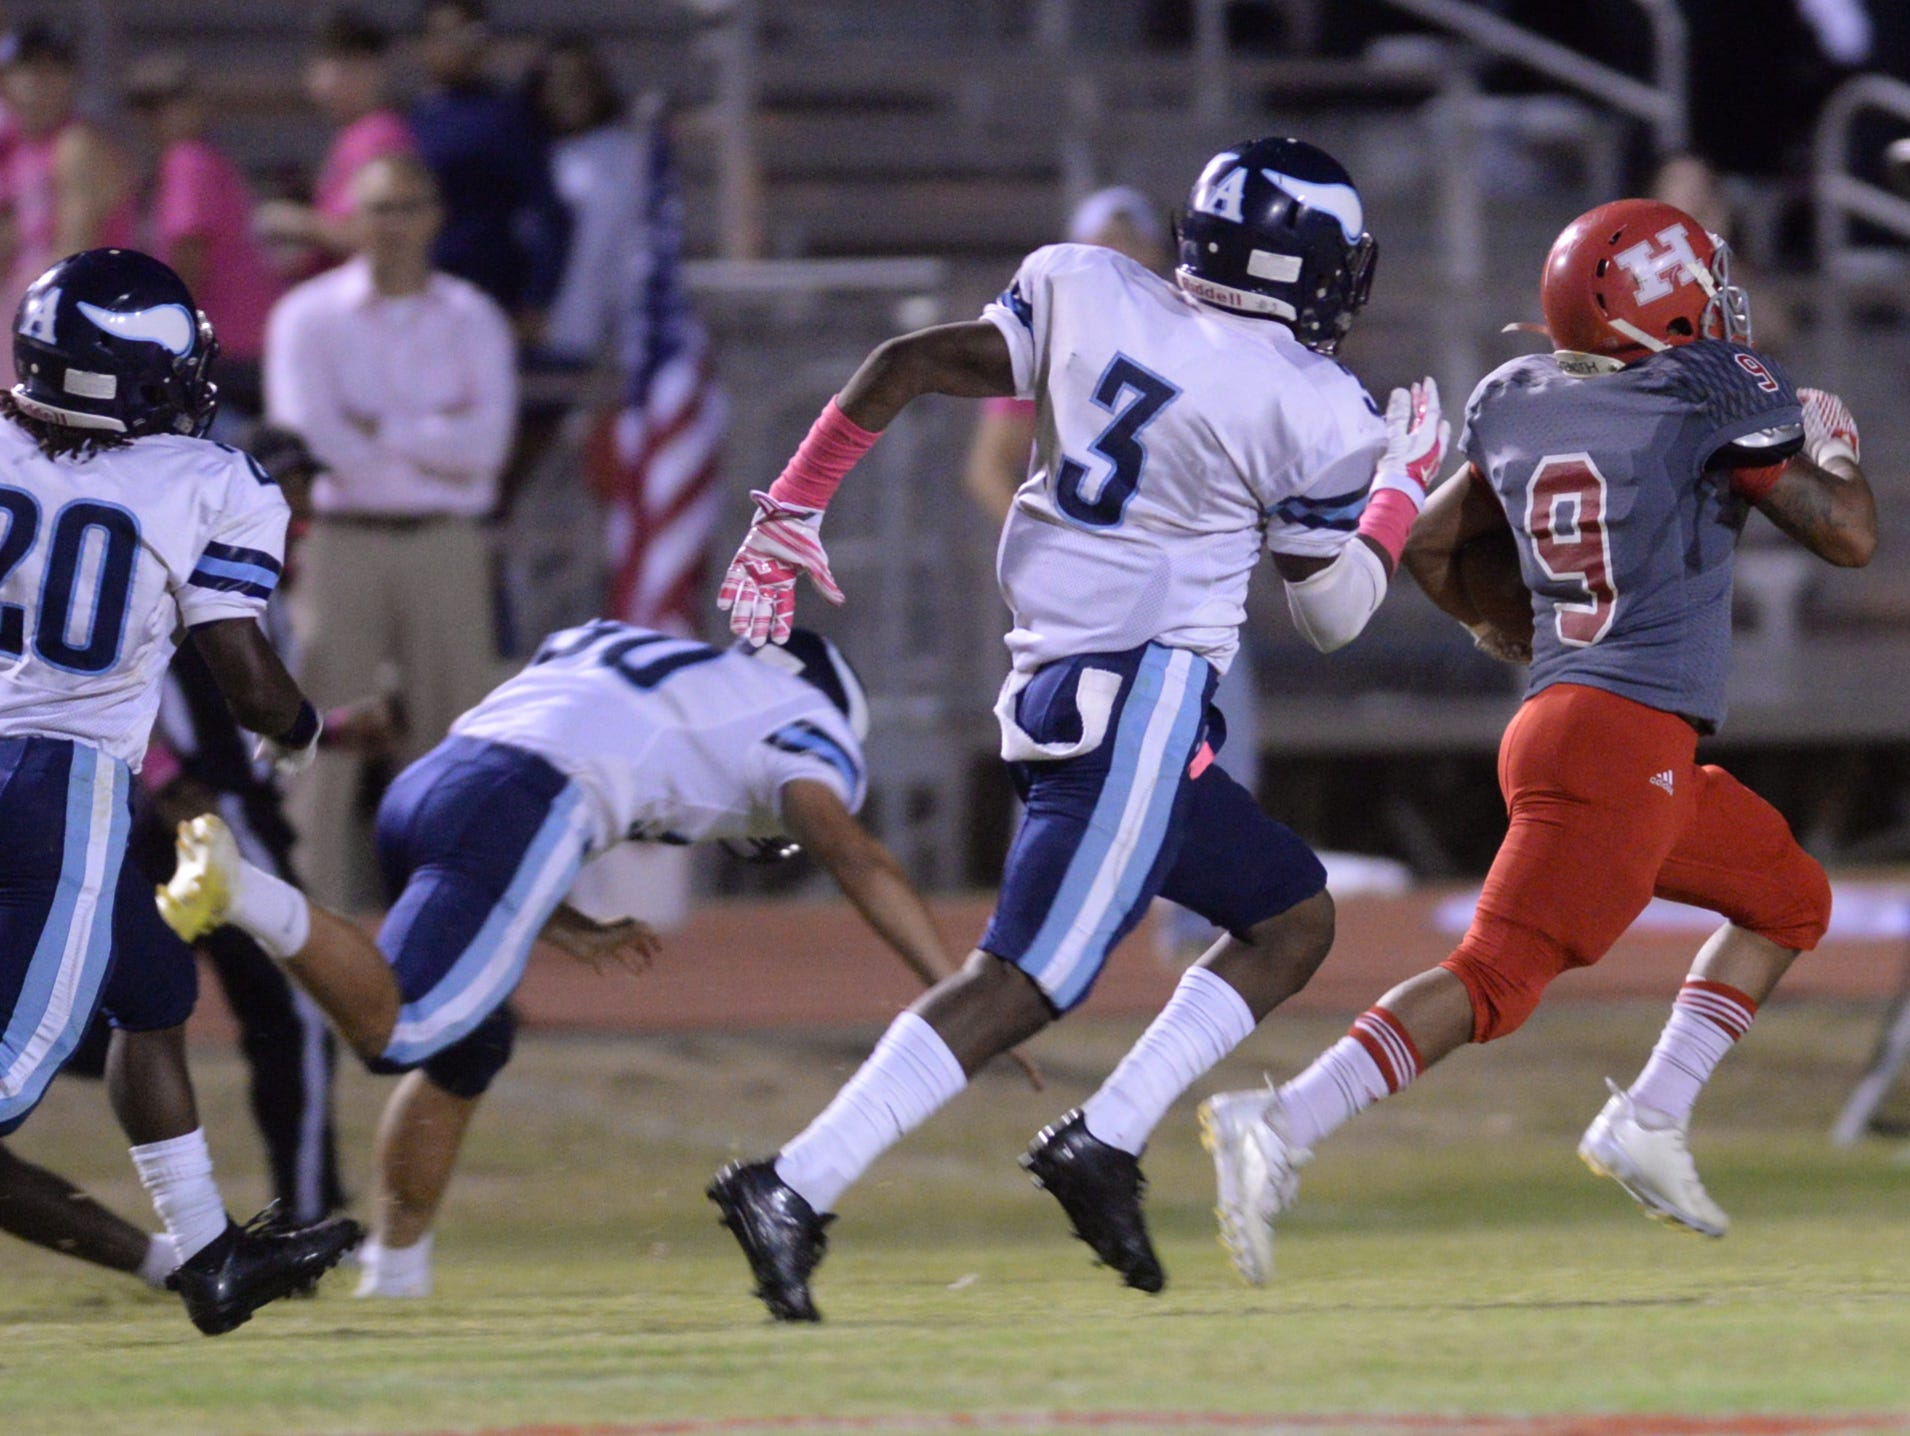 Haughton's Keiuntre Normandin is trailed by a swarm of Airline defenders to be stopped just shy of the end zone.